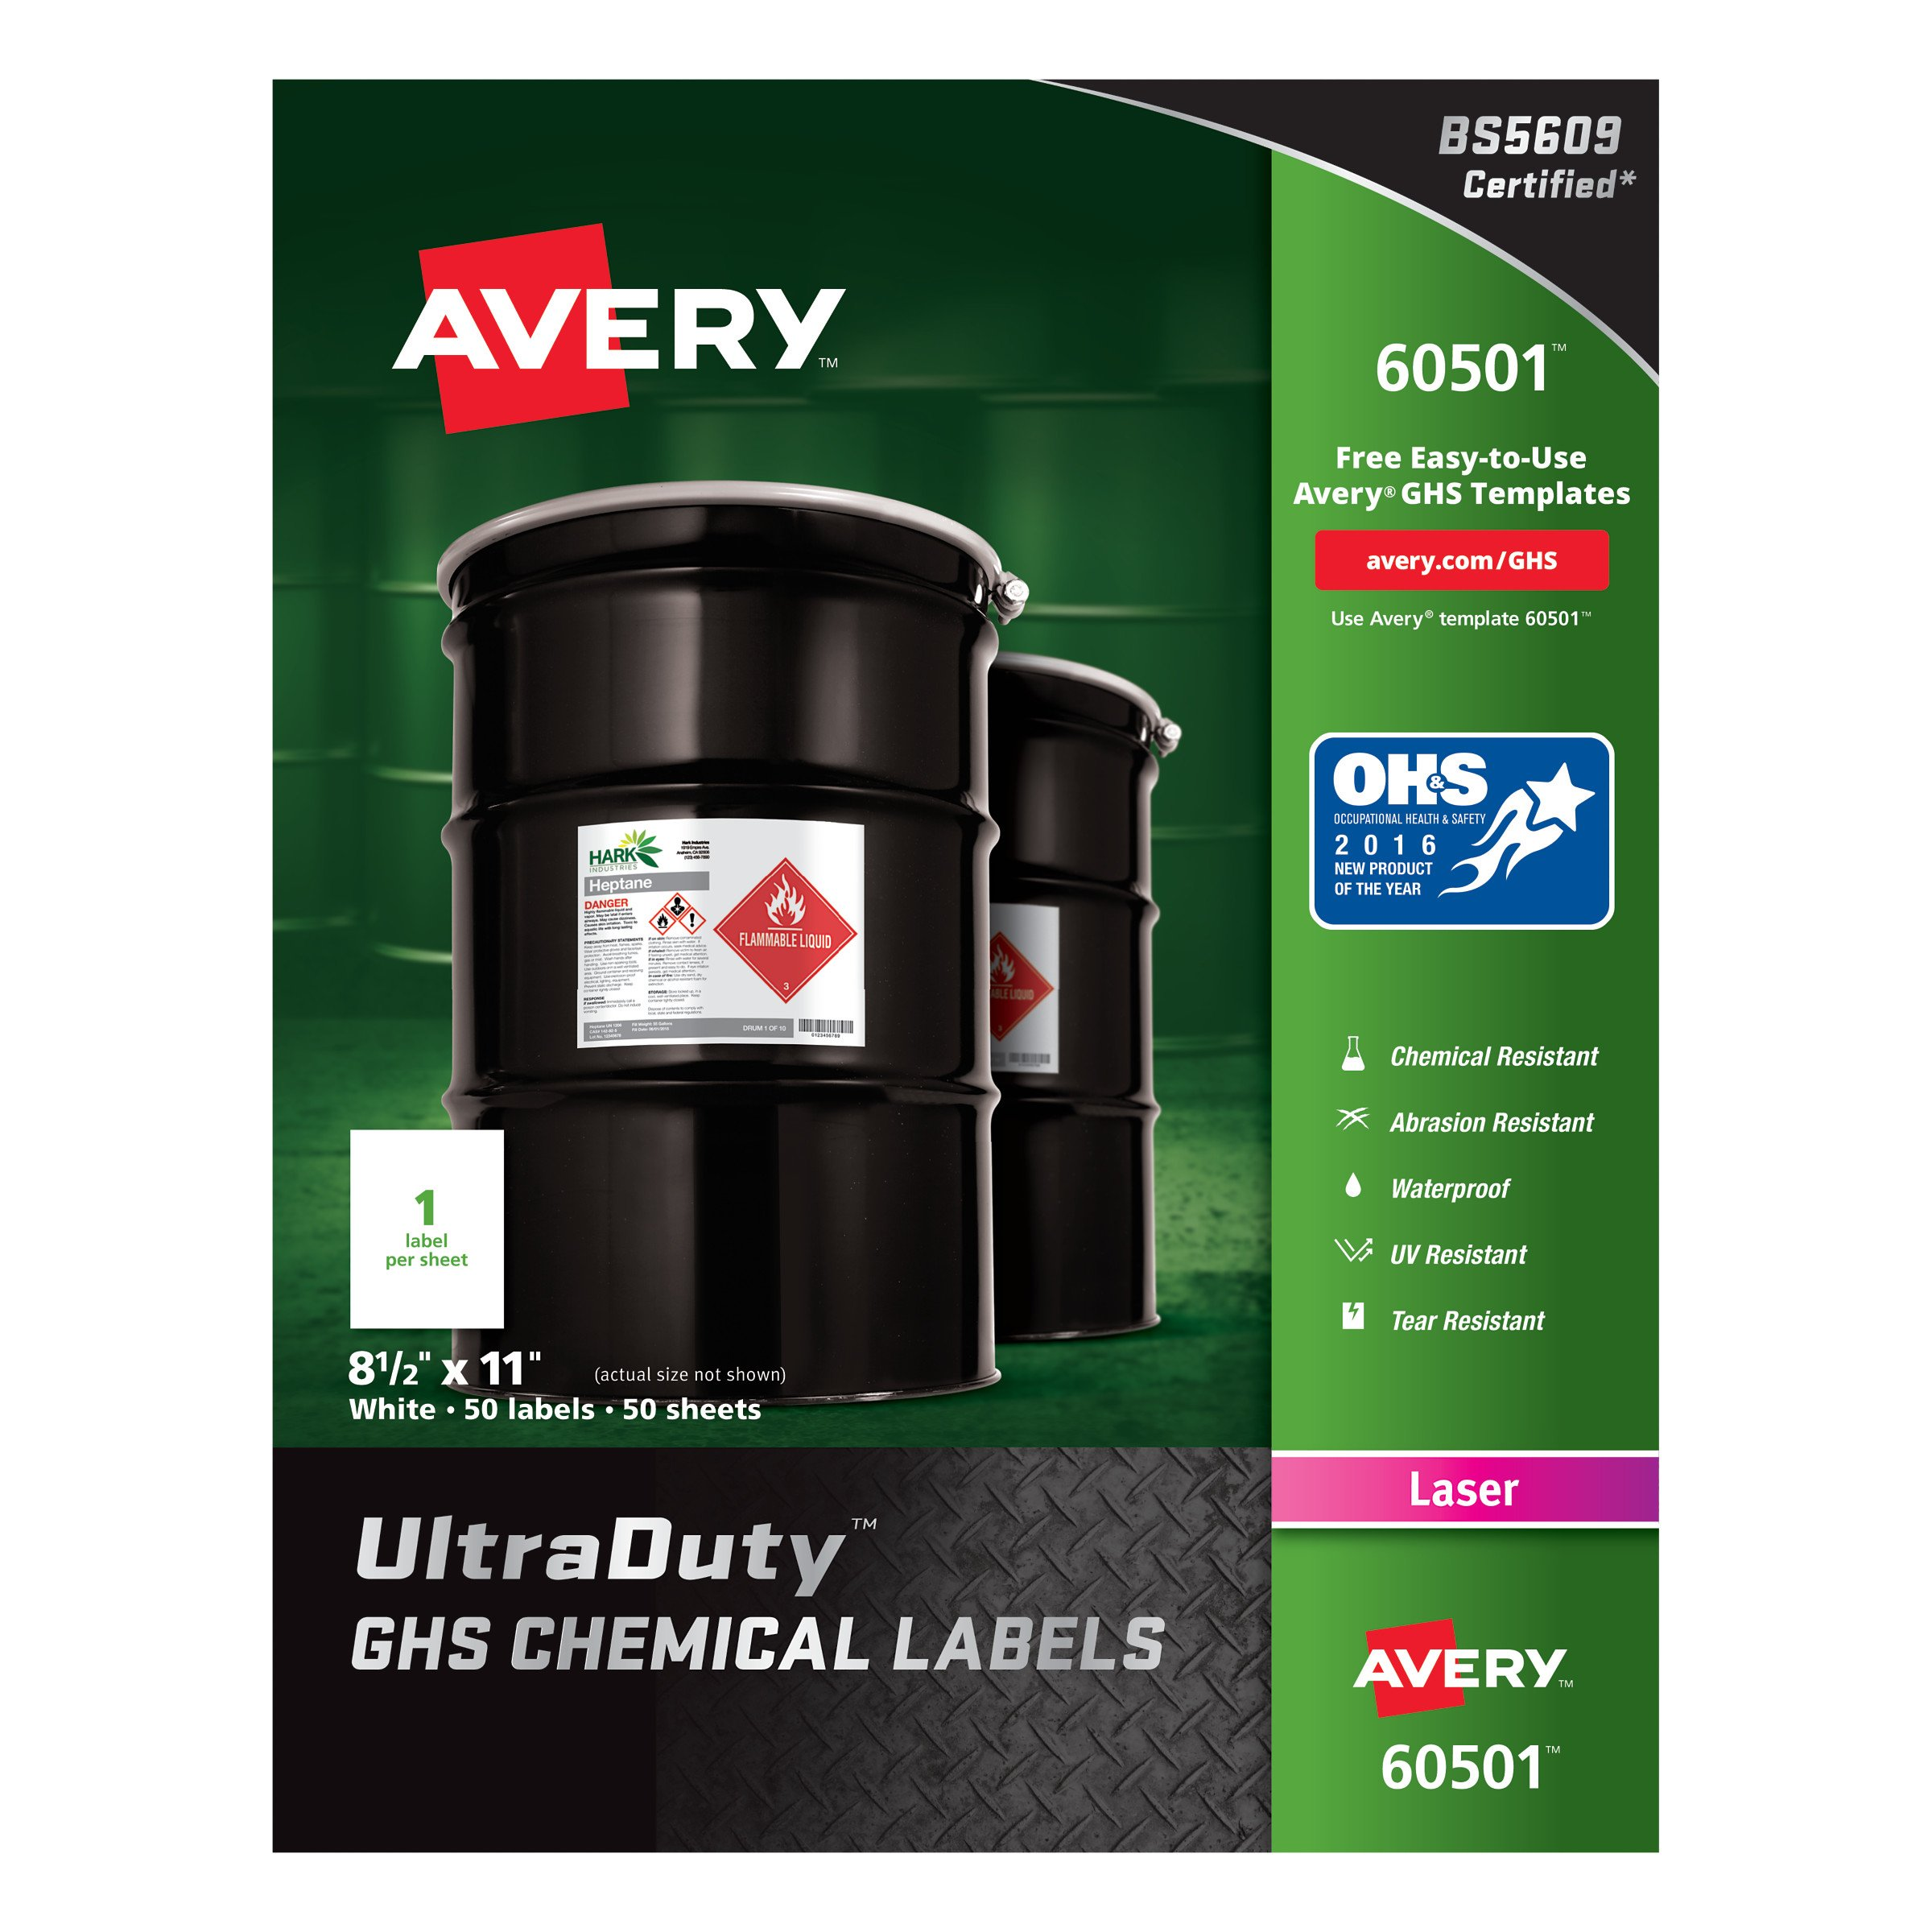 Avery UltraDuty GHS Chemical Labels for Laser Printers, Waterproof, UV Resistant, 8.5'' x 11'', 50 Pack (60501)